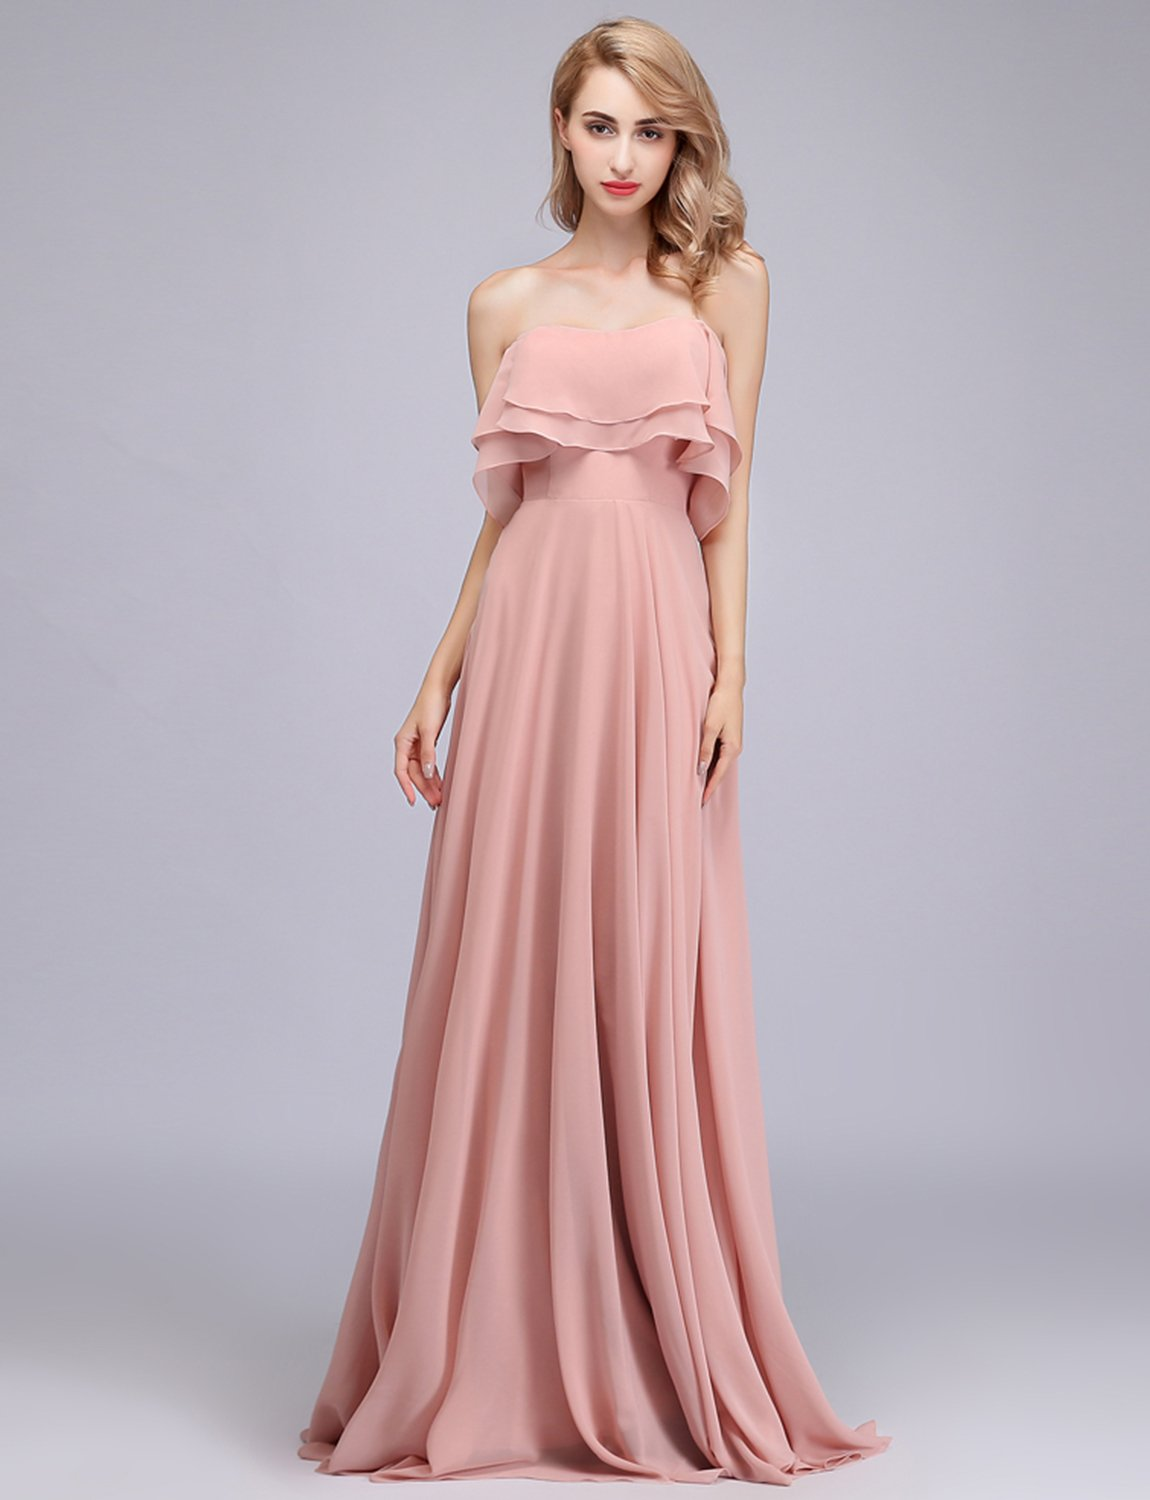 b49bb243ca85 CLOTHKNOW Strapless Chiffon Bridesmaid Dresses Long with Shoulder Ruffles  for Women Girls to Wedding Party Gowns